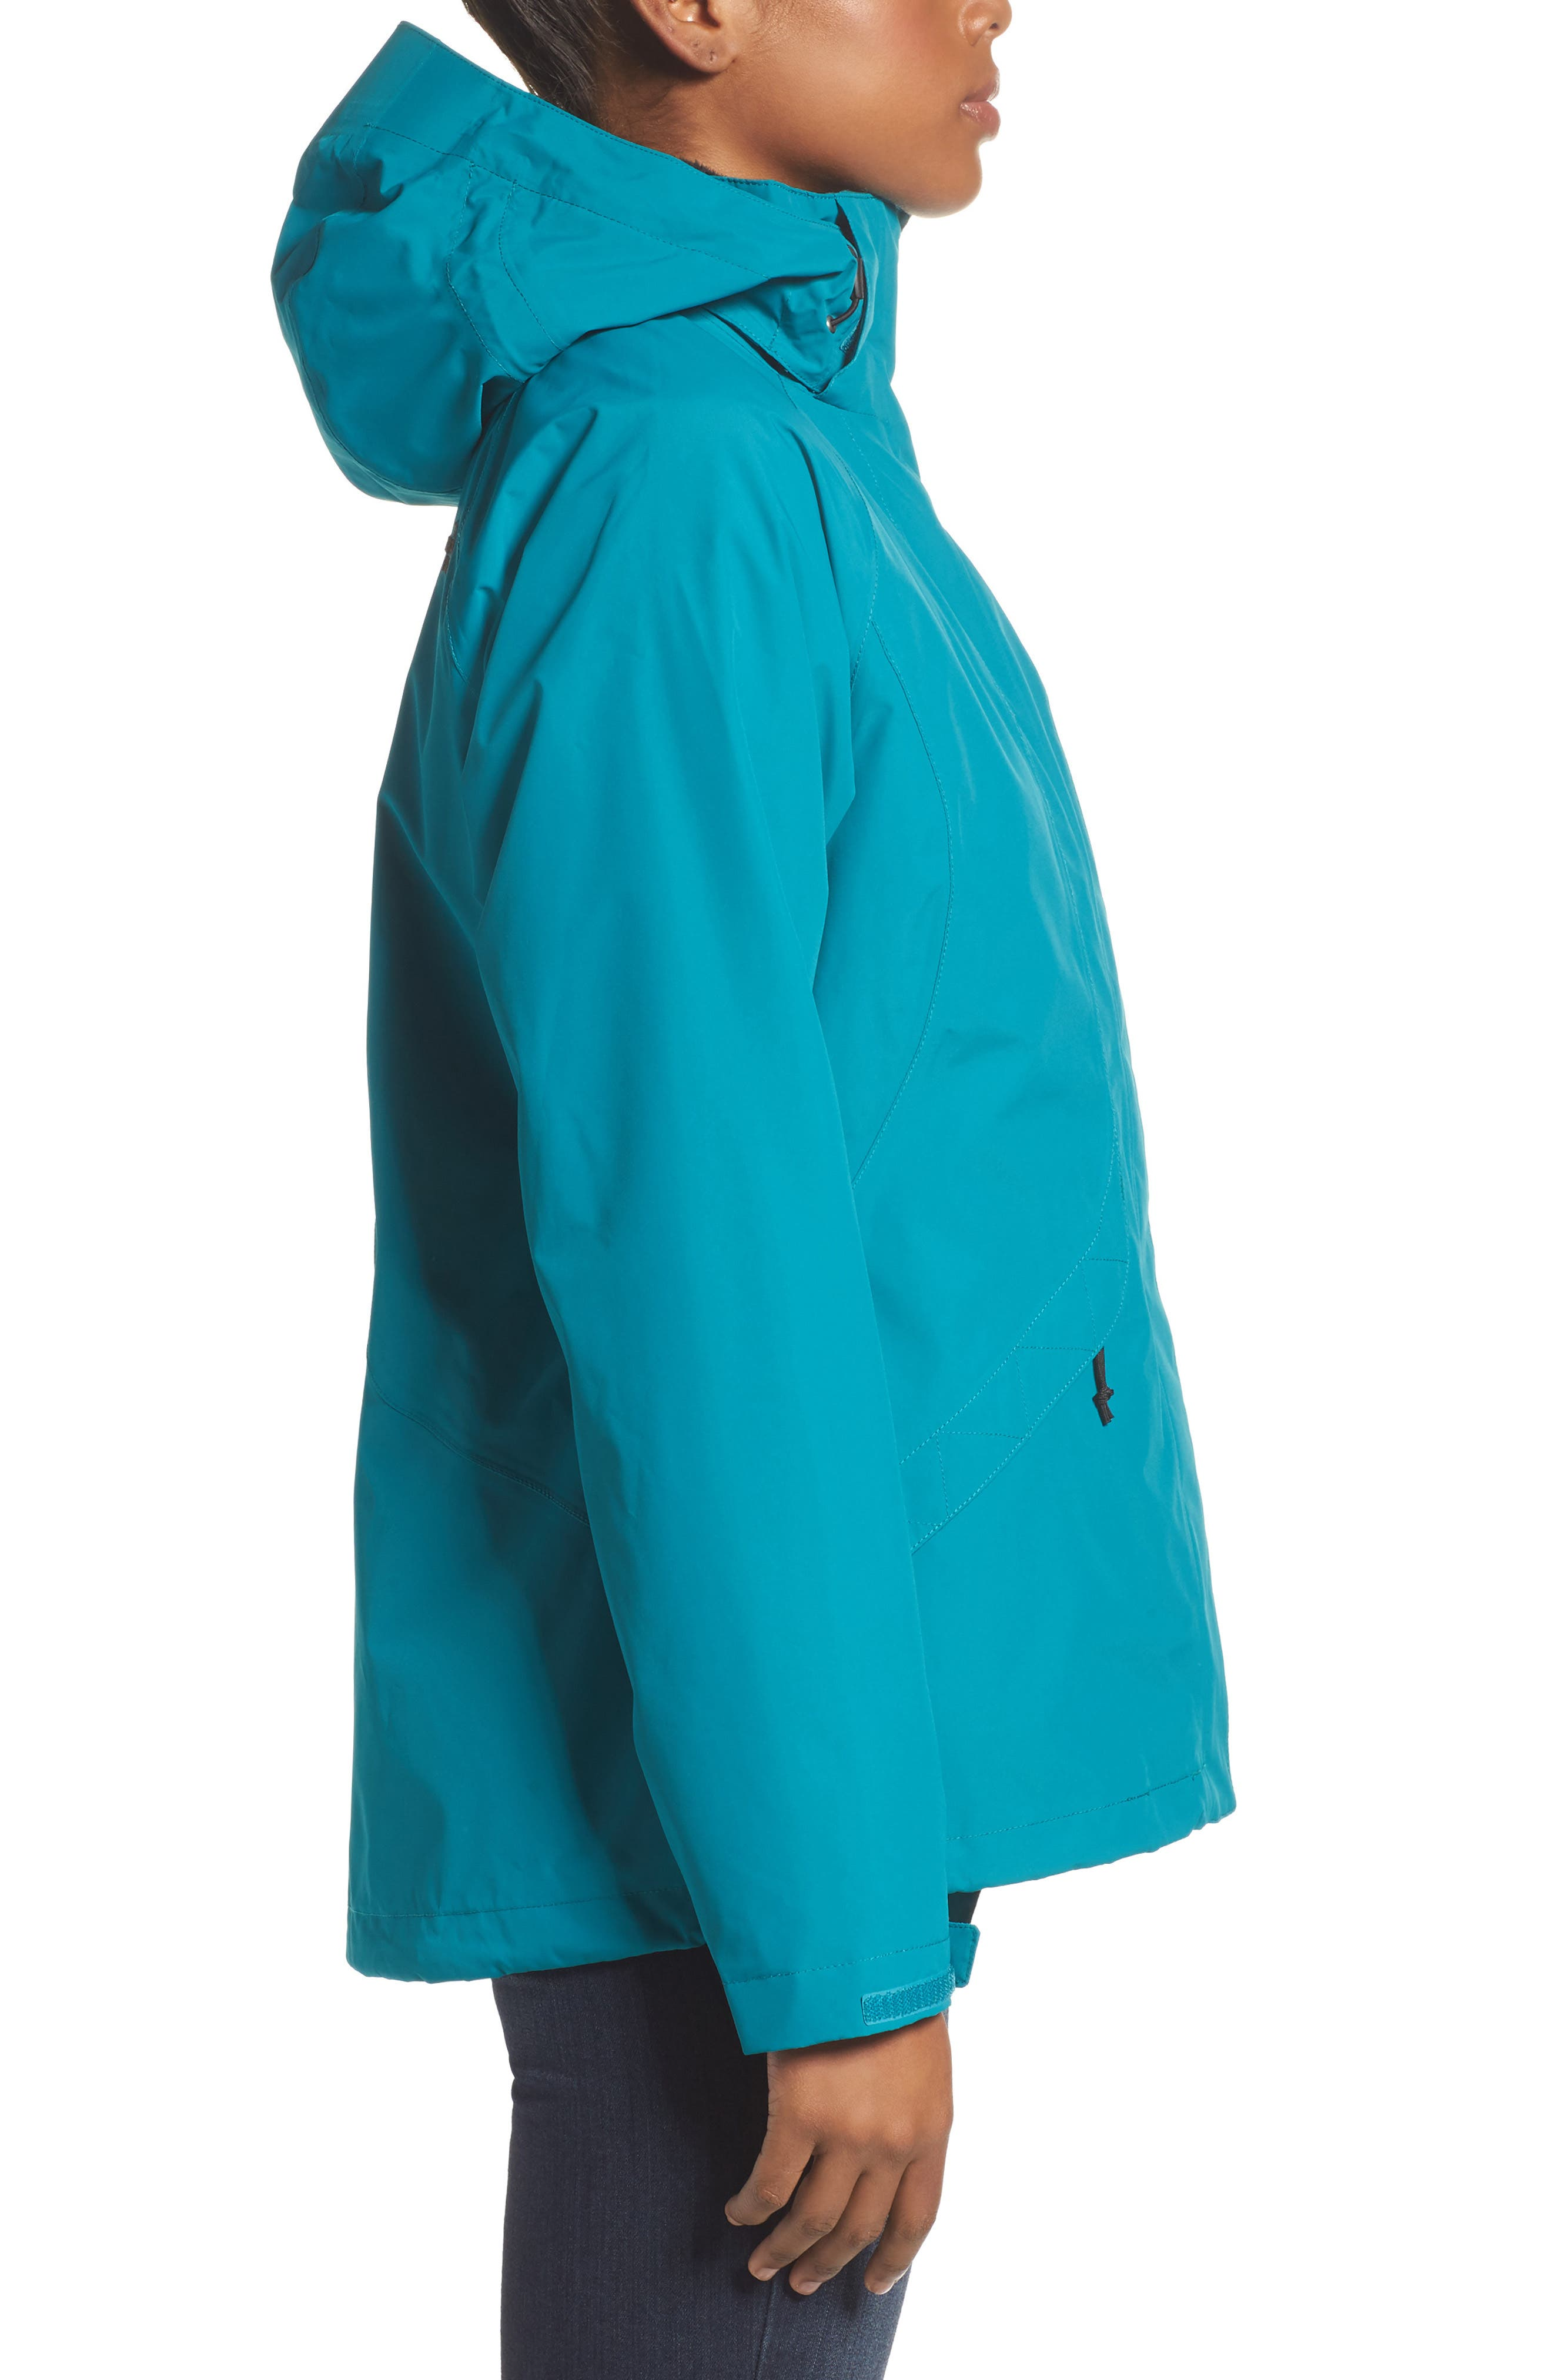 Boundary Triclimate<sup>®</sup> 3-in-1 Jacket,                             Alternate thumbnail 11, color,